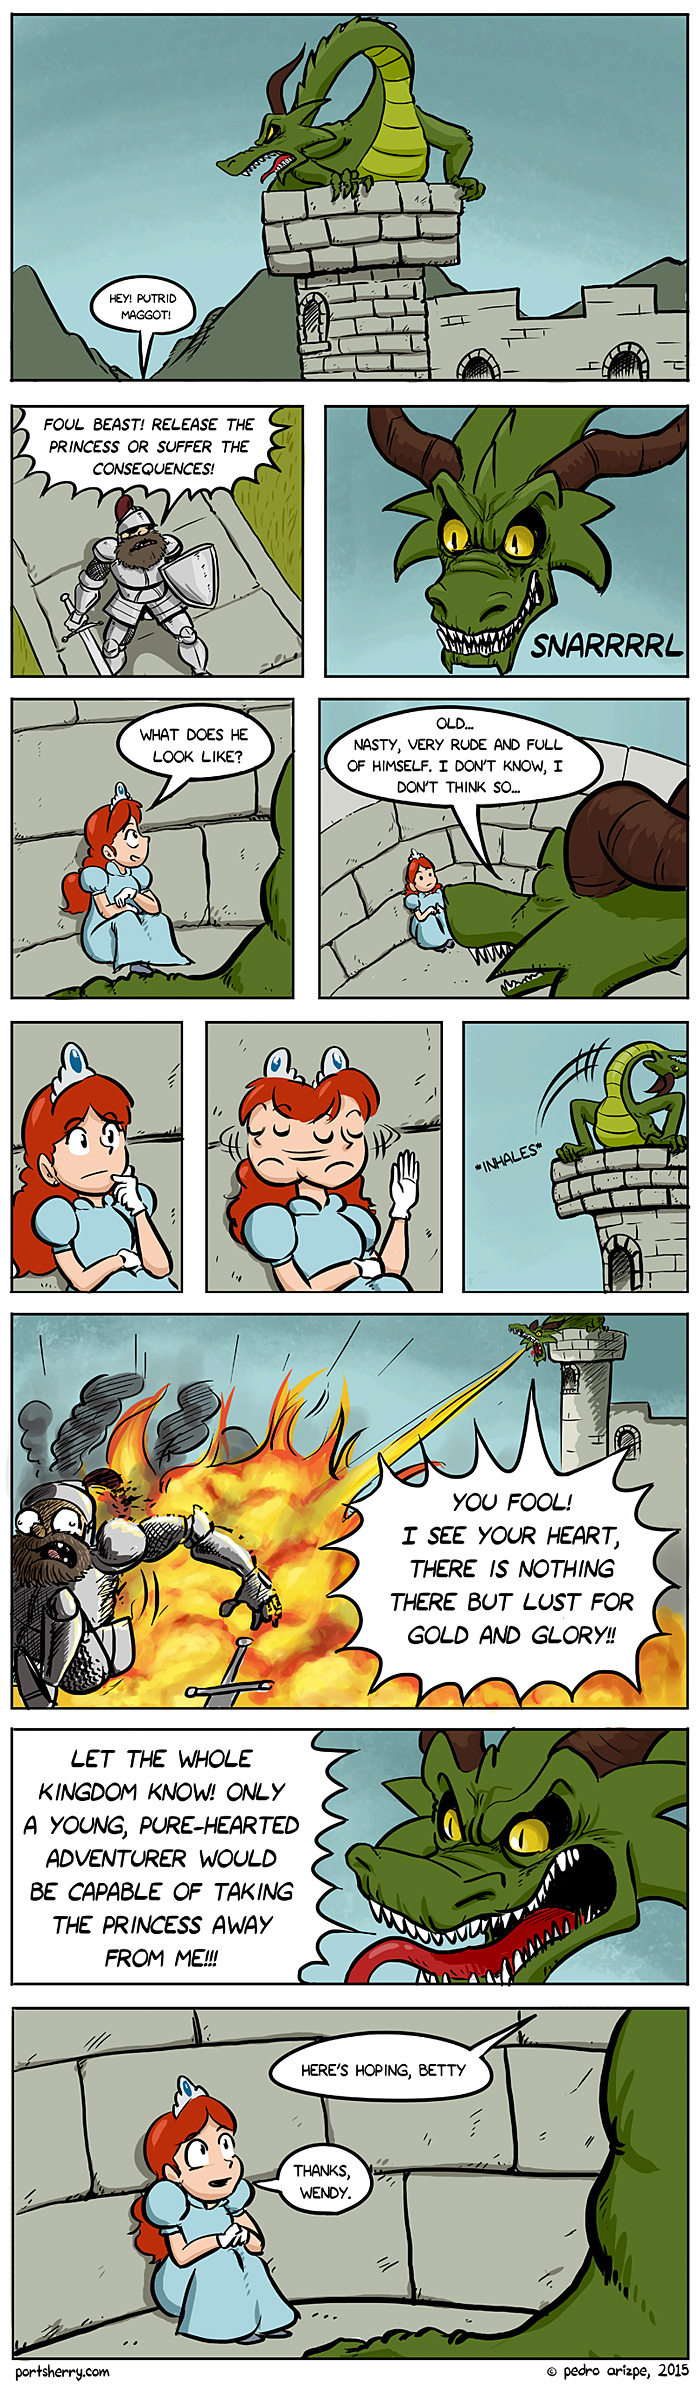 princess-dragon-comic-01.jpg